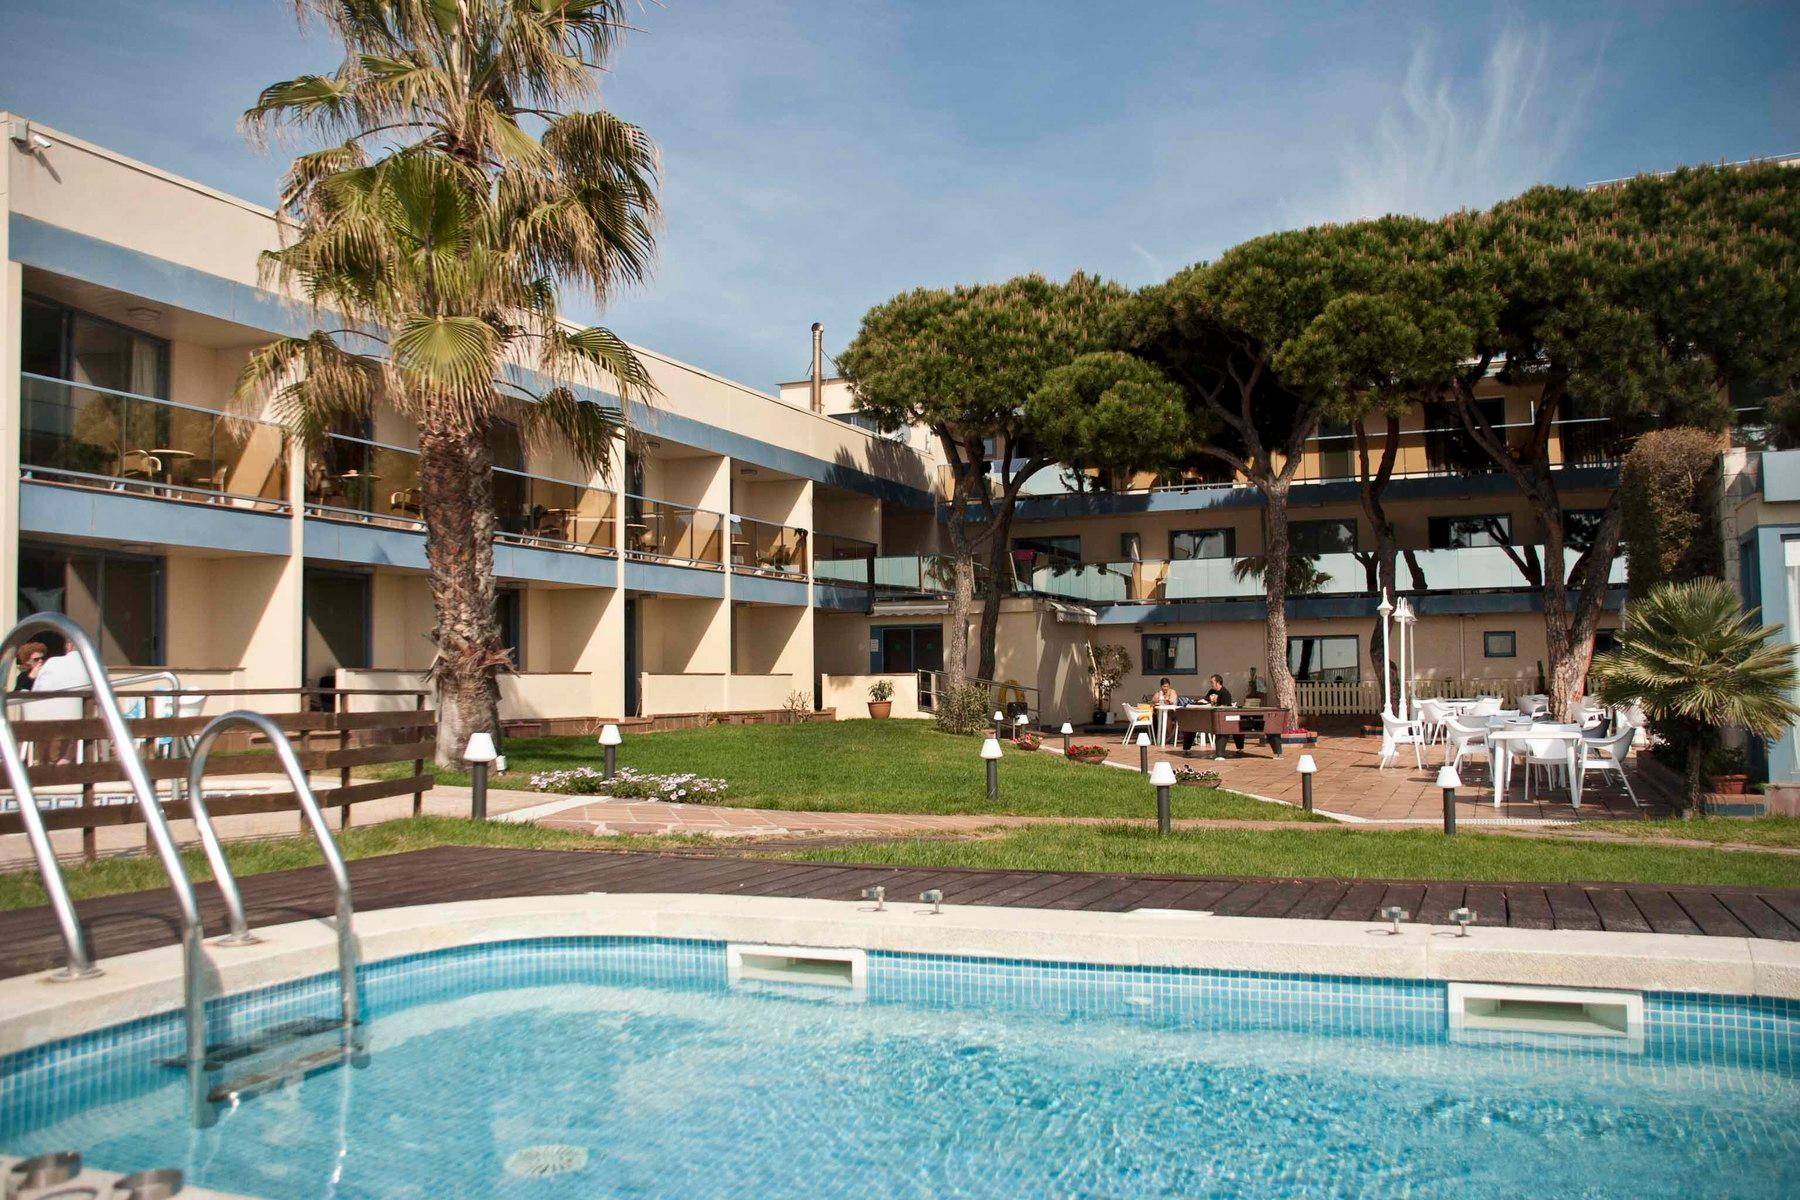 Amaraigua Hotel in Malgrat de Mar, Costa Brava, Spain